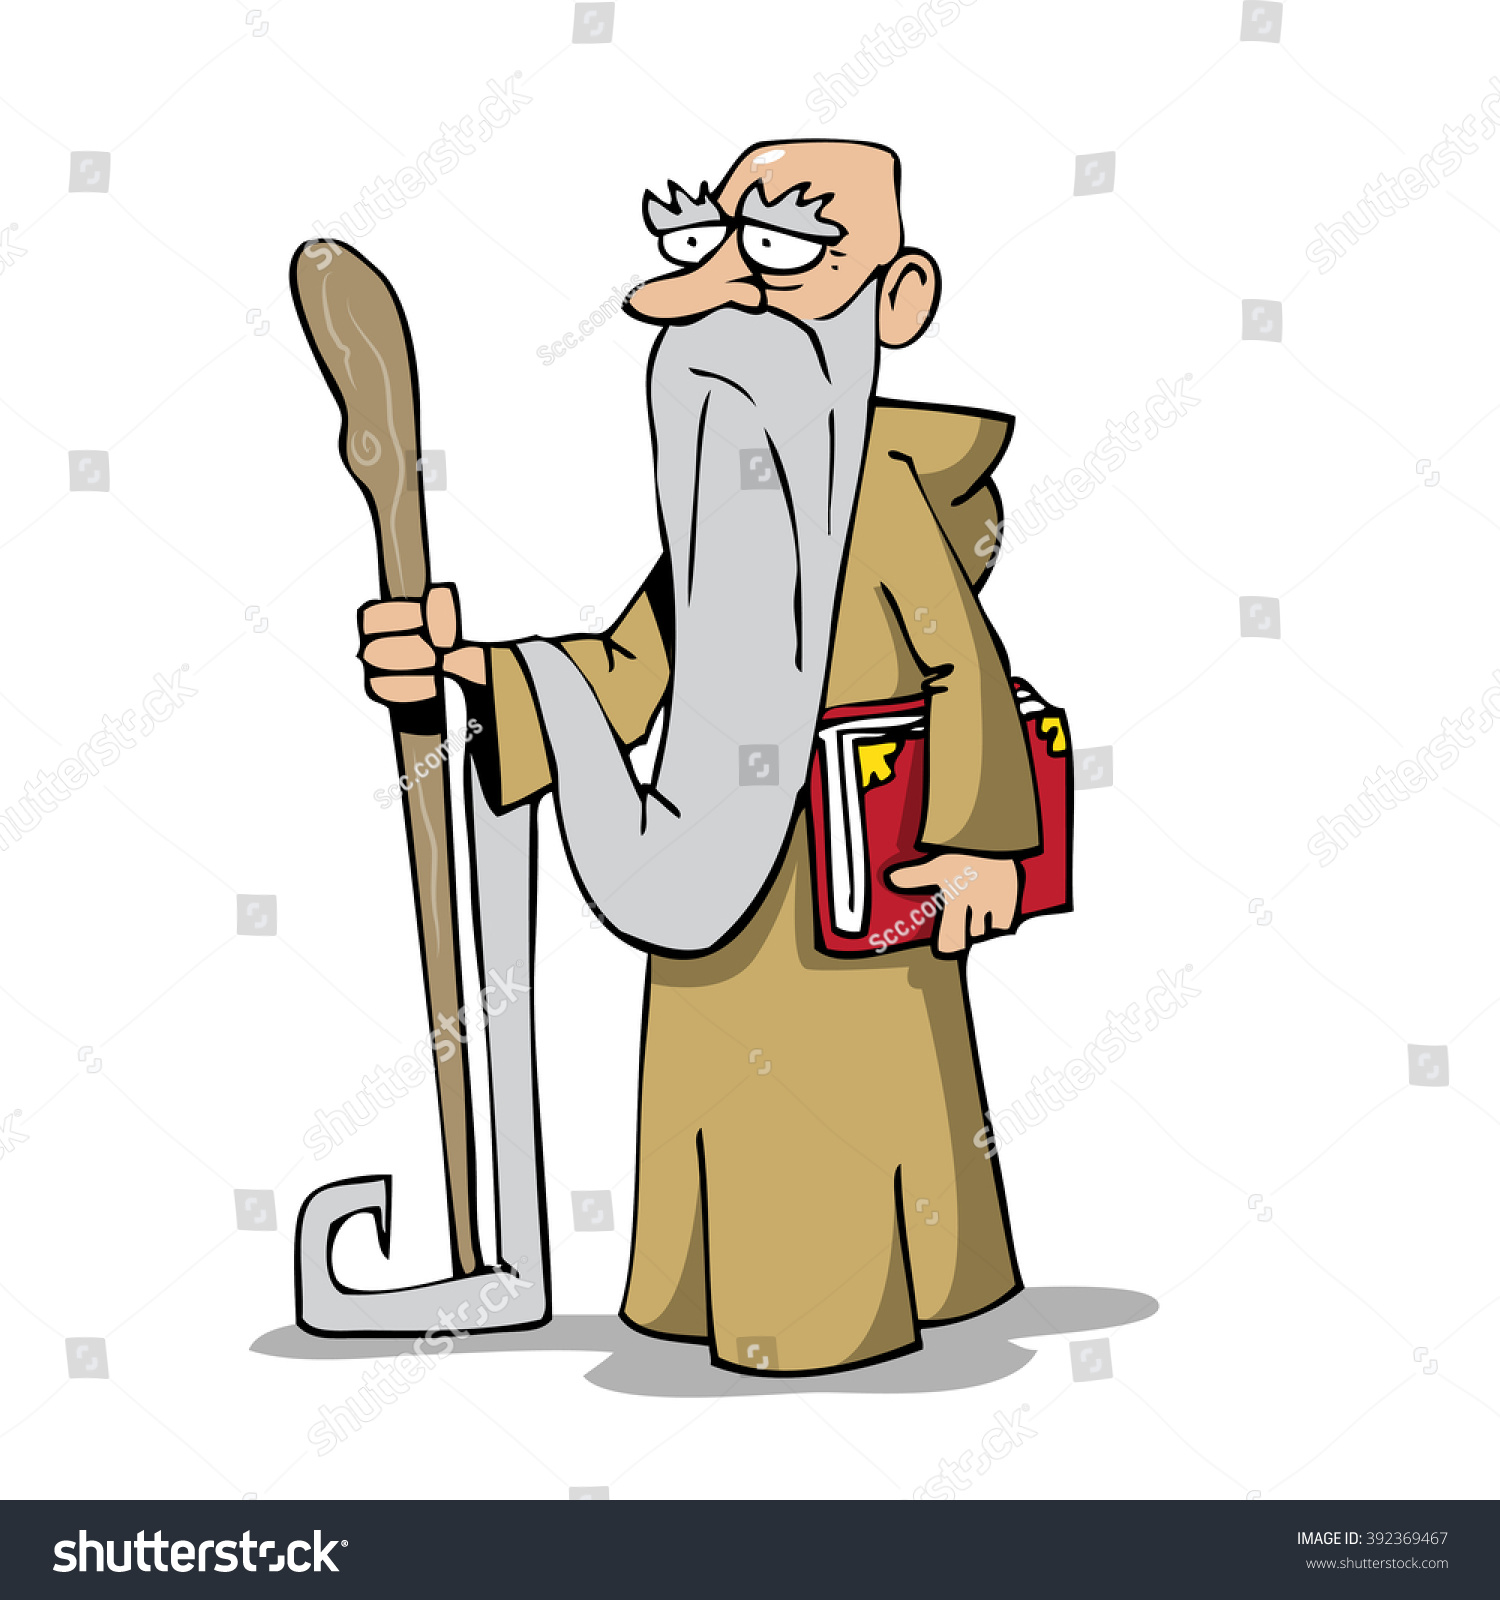 Old Wise Man Stock Vector 392369467 - Shutterstock